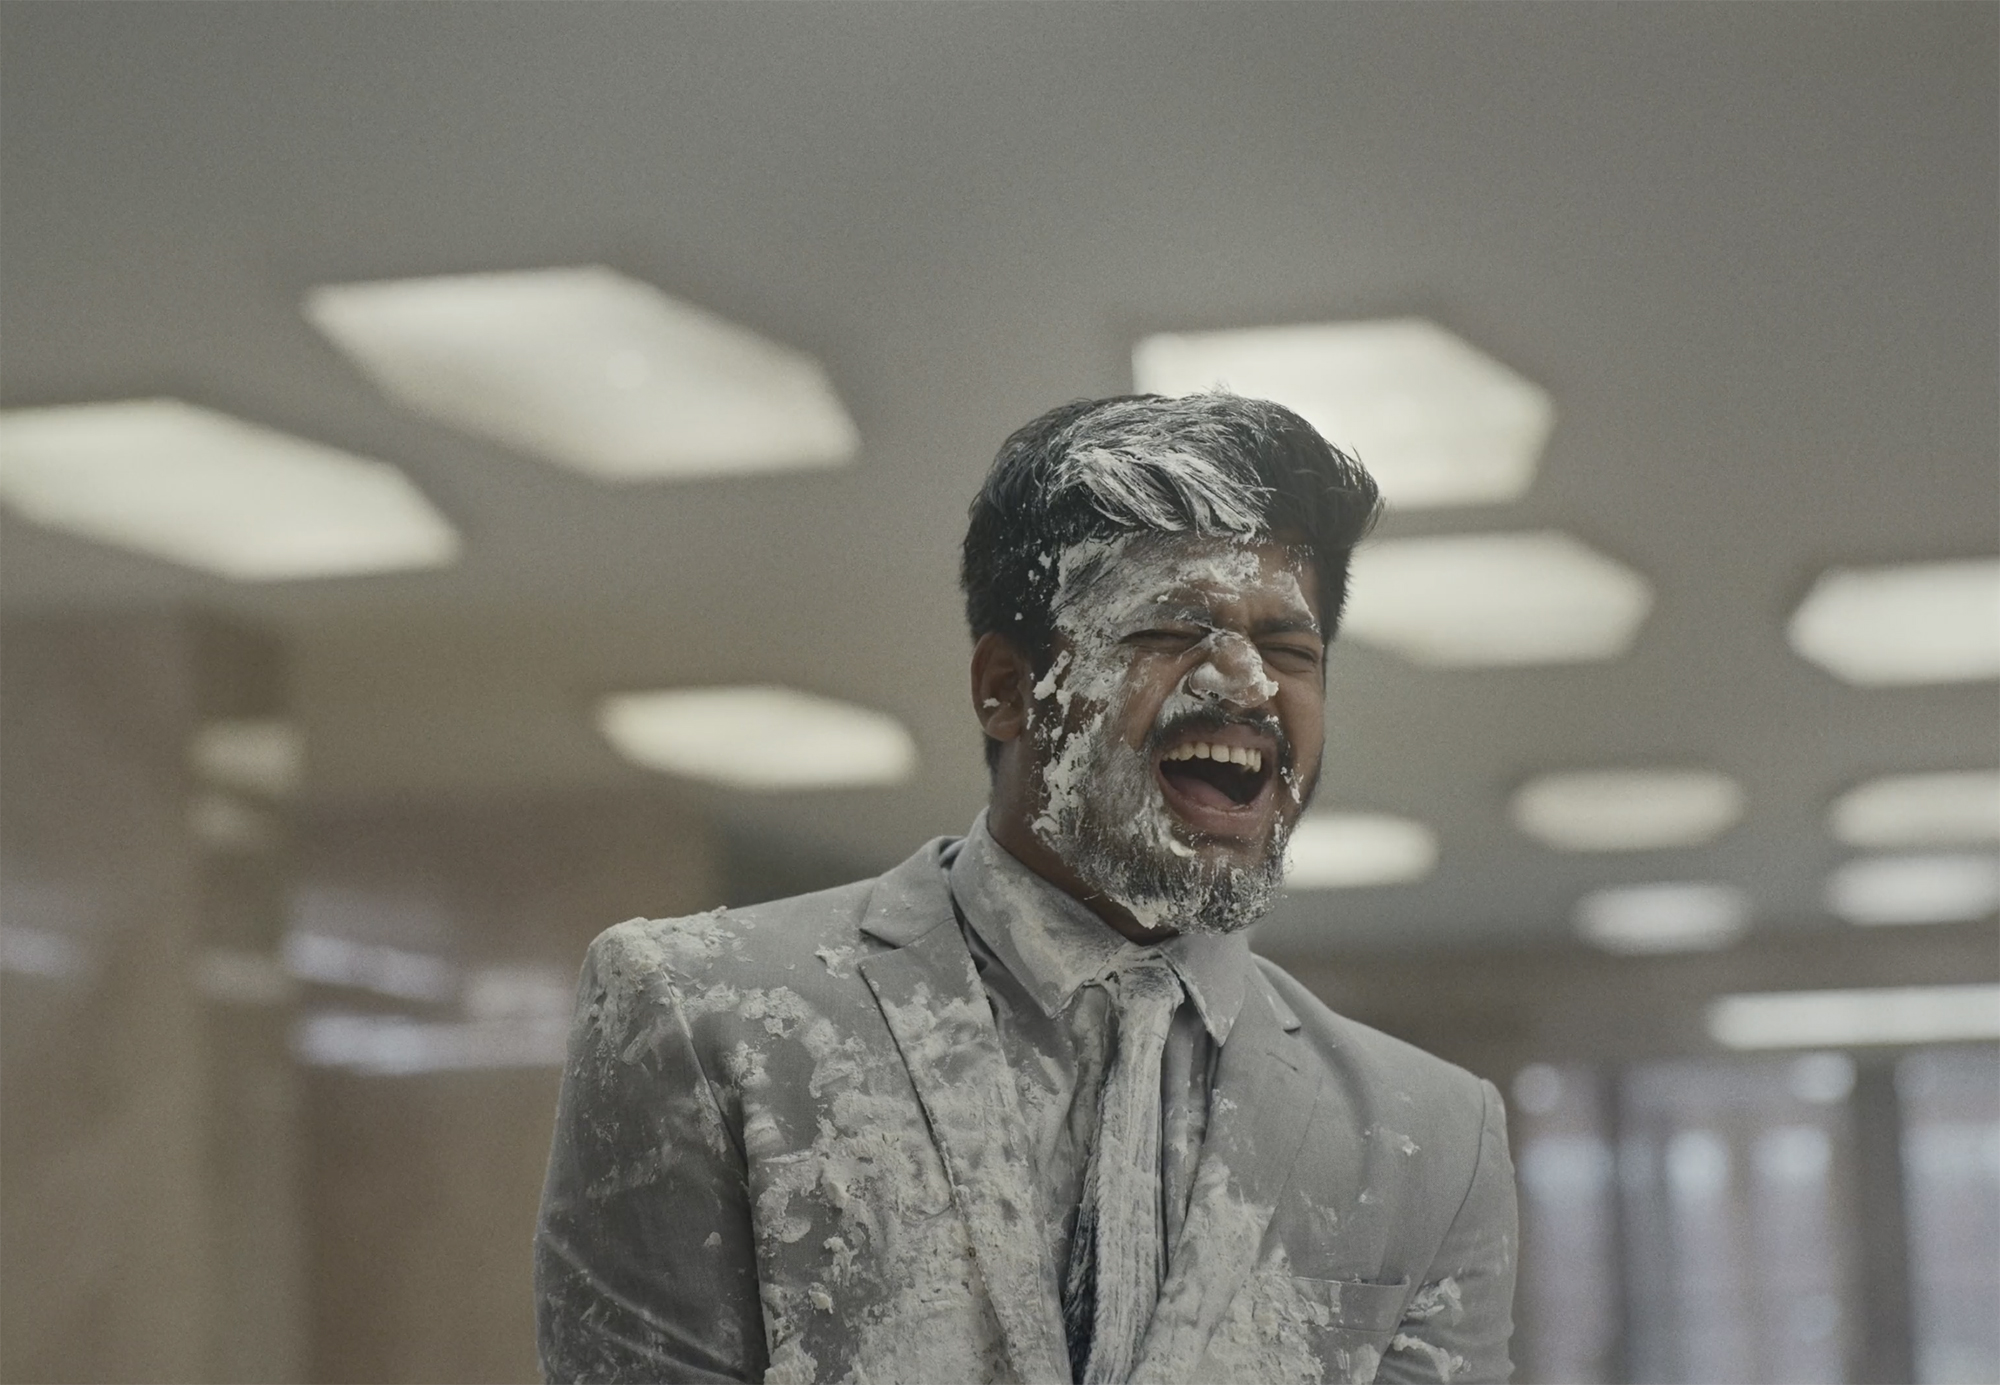 Hilarity Ensues as Everything Goes Catastrophically Wrong in an Ad for Etisalat